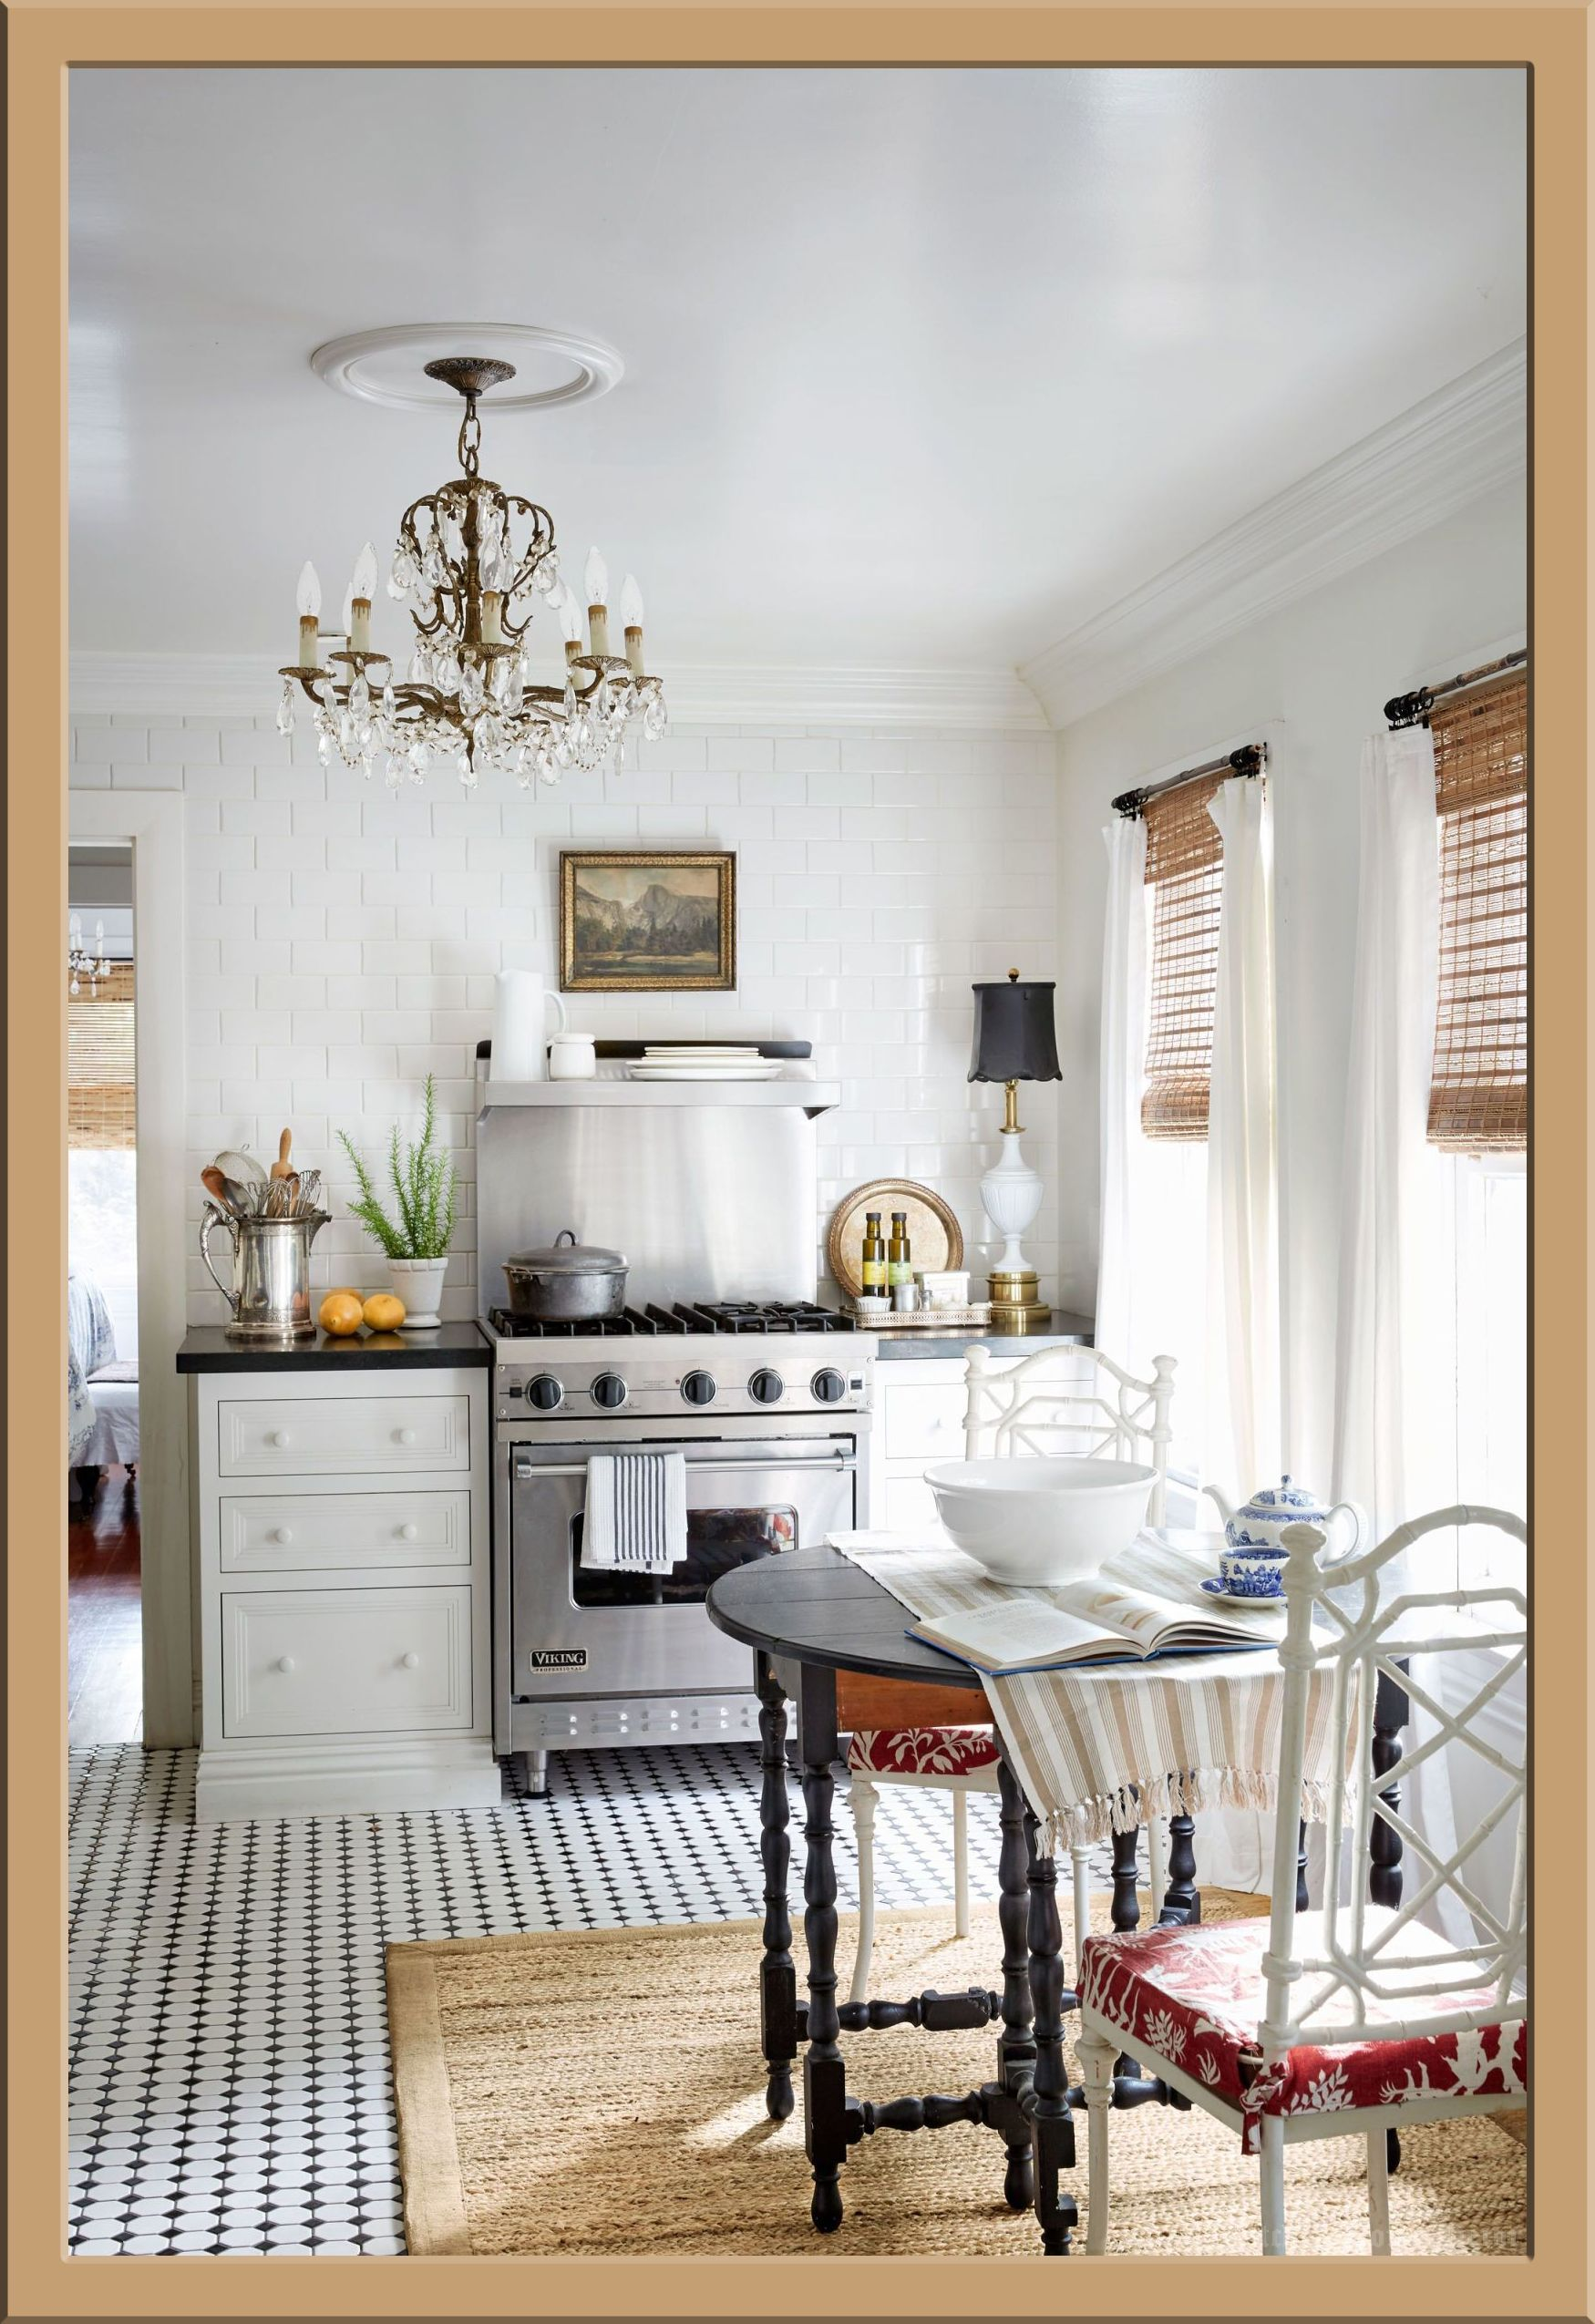 Learn How To Kitchen Decor Persuasively In 3 Easy Steps